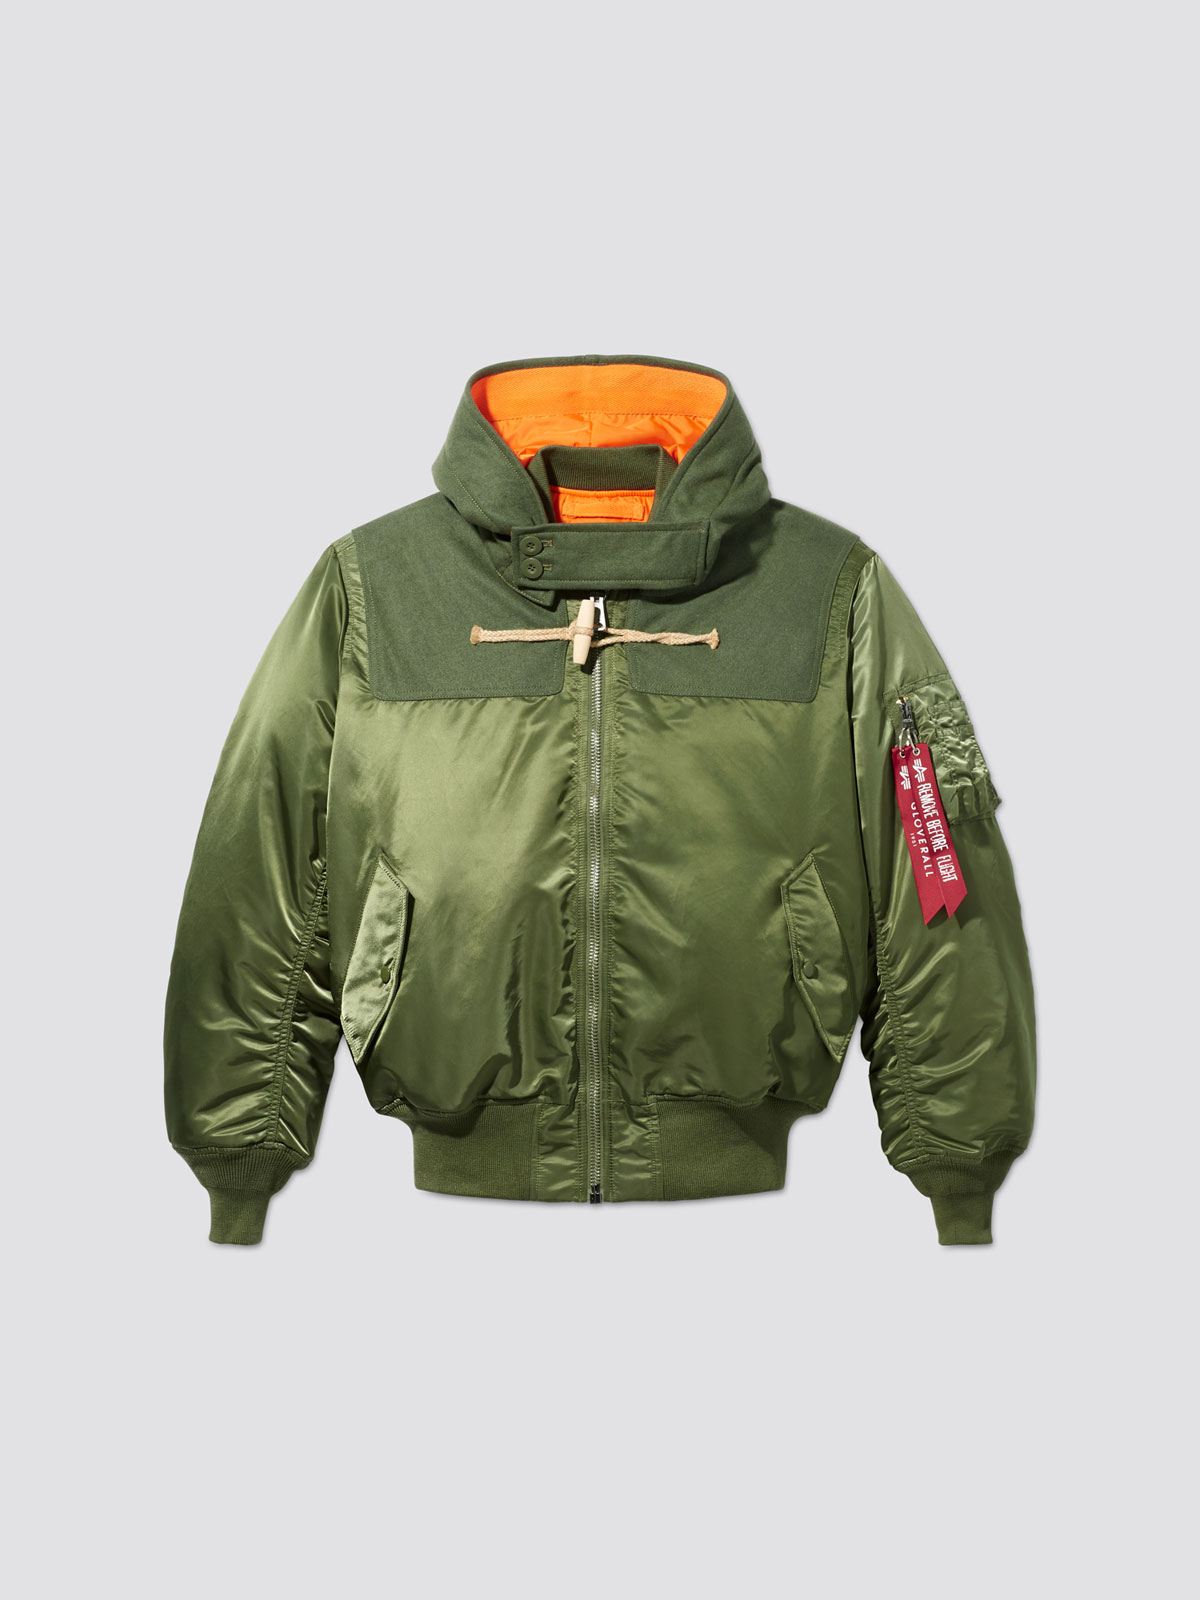 Alpha Industries x Gloverall